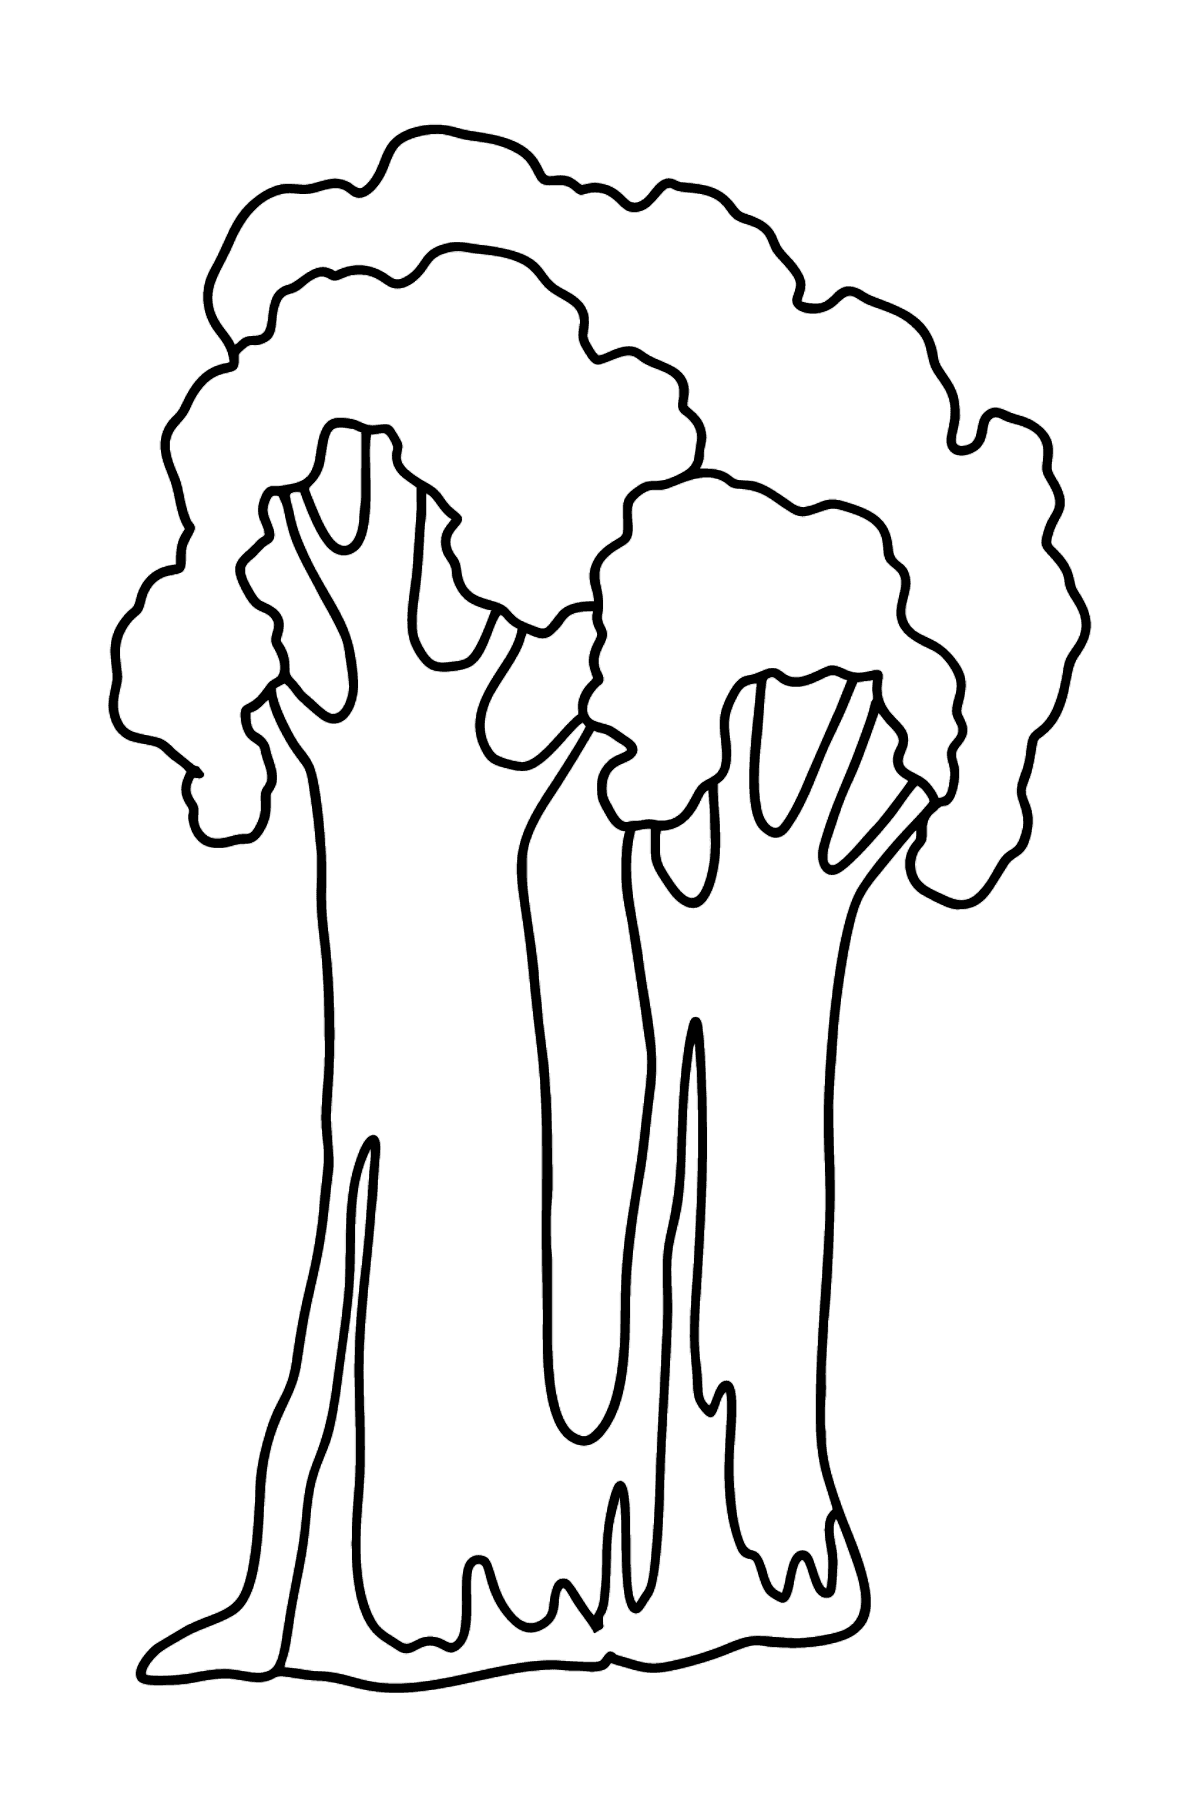 Sequoia coloring page - Coloring Pages for Kids